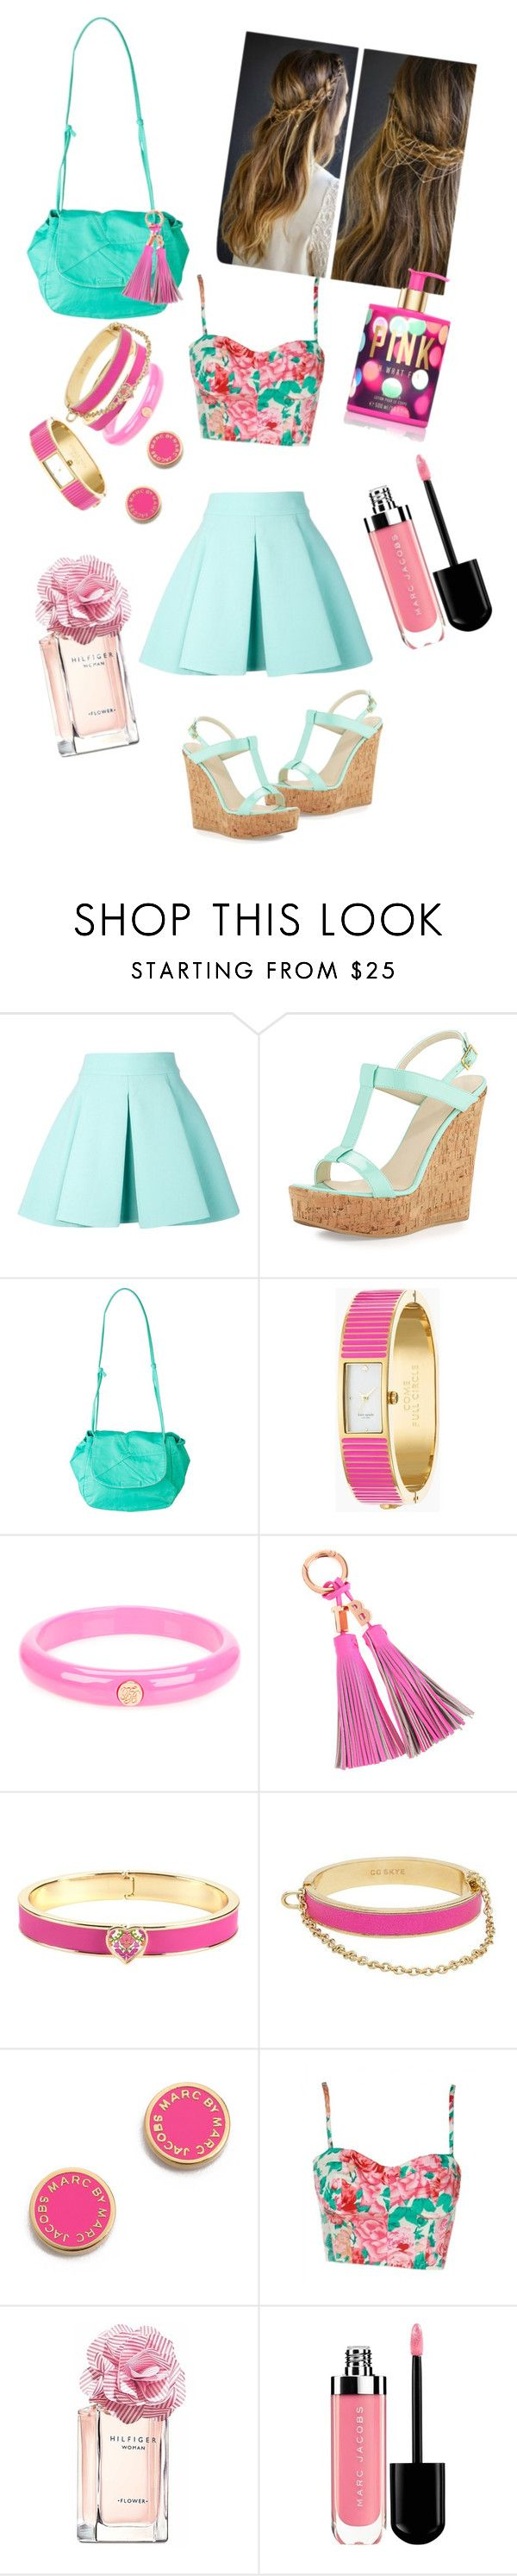 """Mint & Pink collection"" by samantha-radioactive ❤ liked on Polyvore featuring FAUSTO PUGLISI, Dee Keller, Billabong, Kate Spade, Ted Baker, Vera Bradley, CC SKYE, Marc by Marc Jacobs, Tommy Hilfiger and Victoria's Secret"